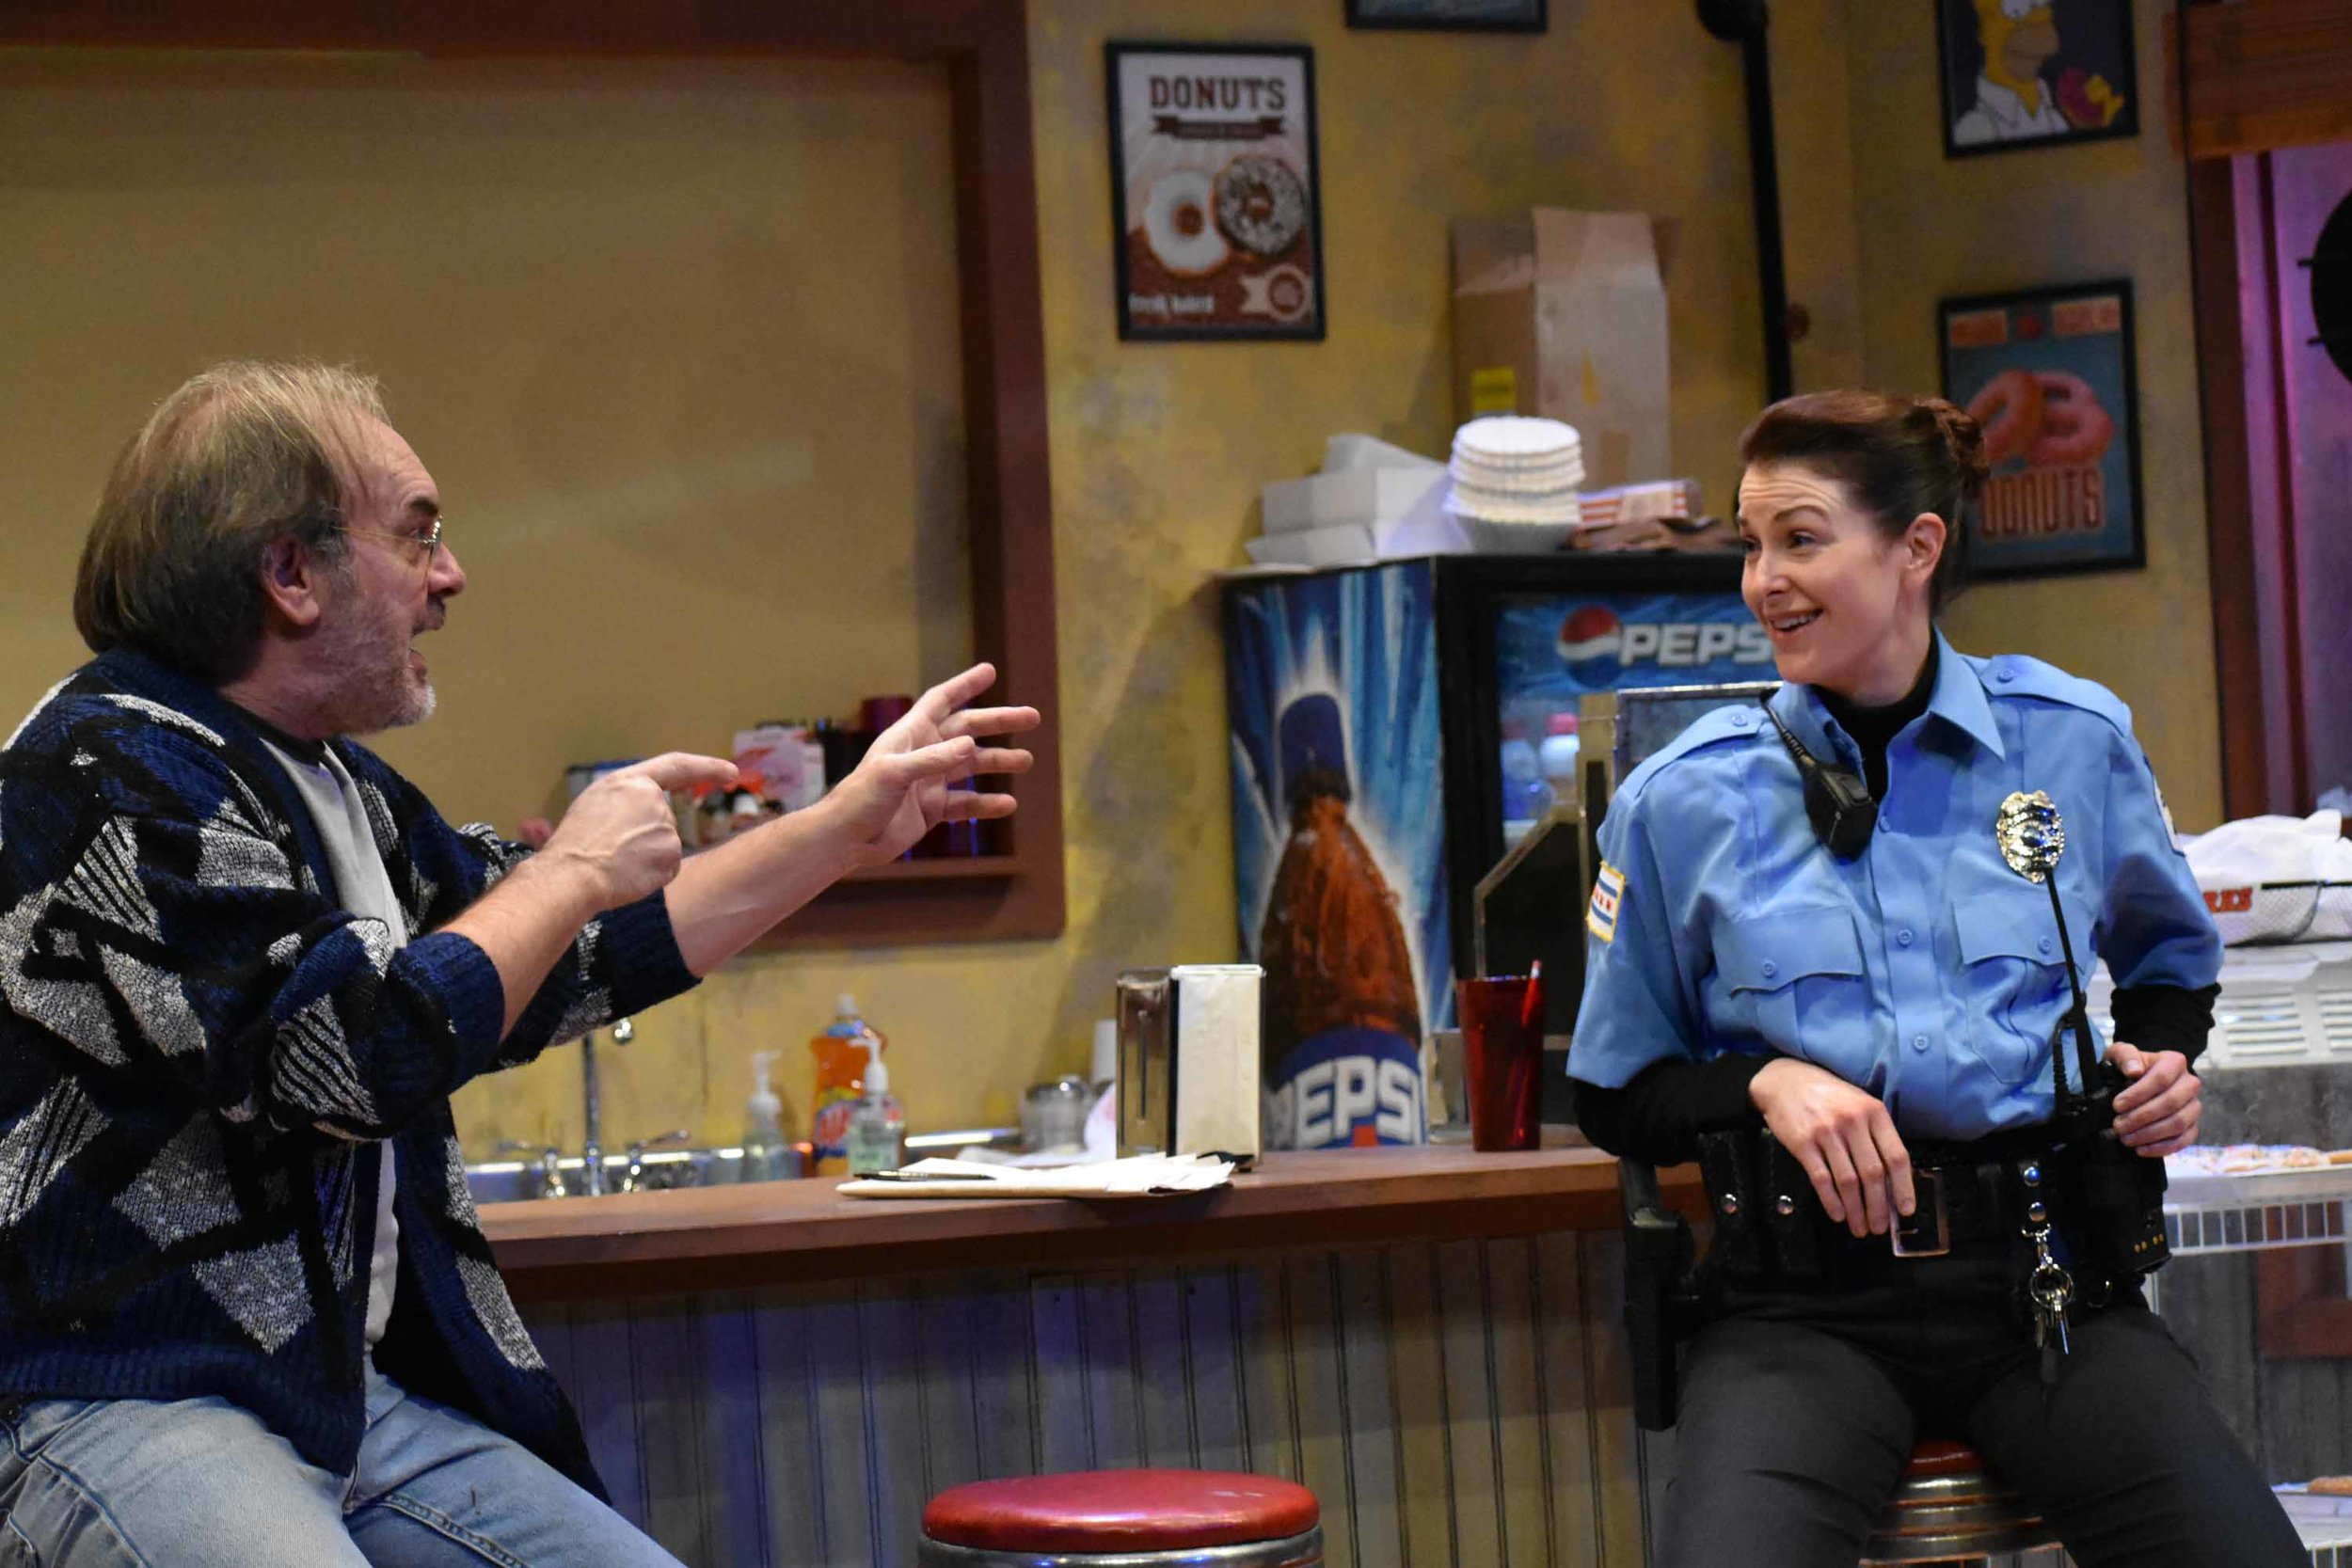 1718-05-SuperiorDonuts-Production-0400.JPG